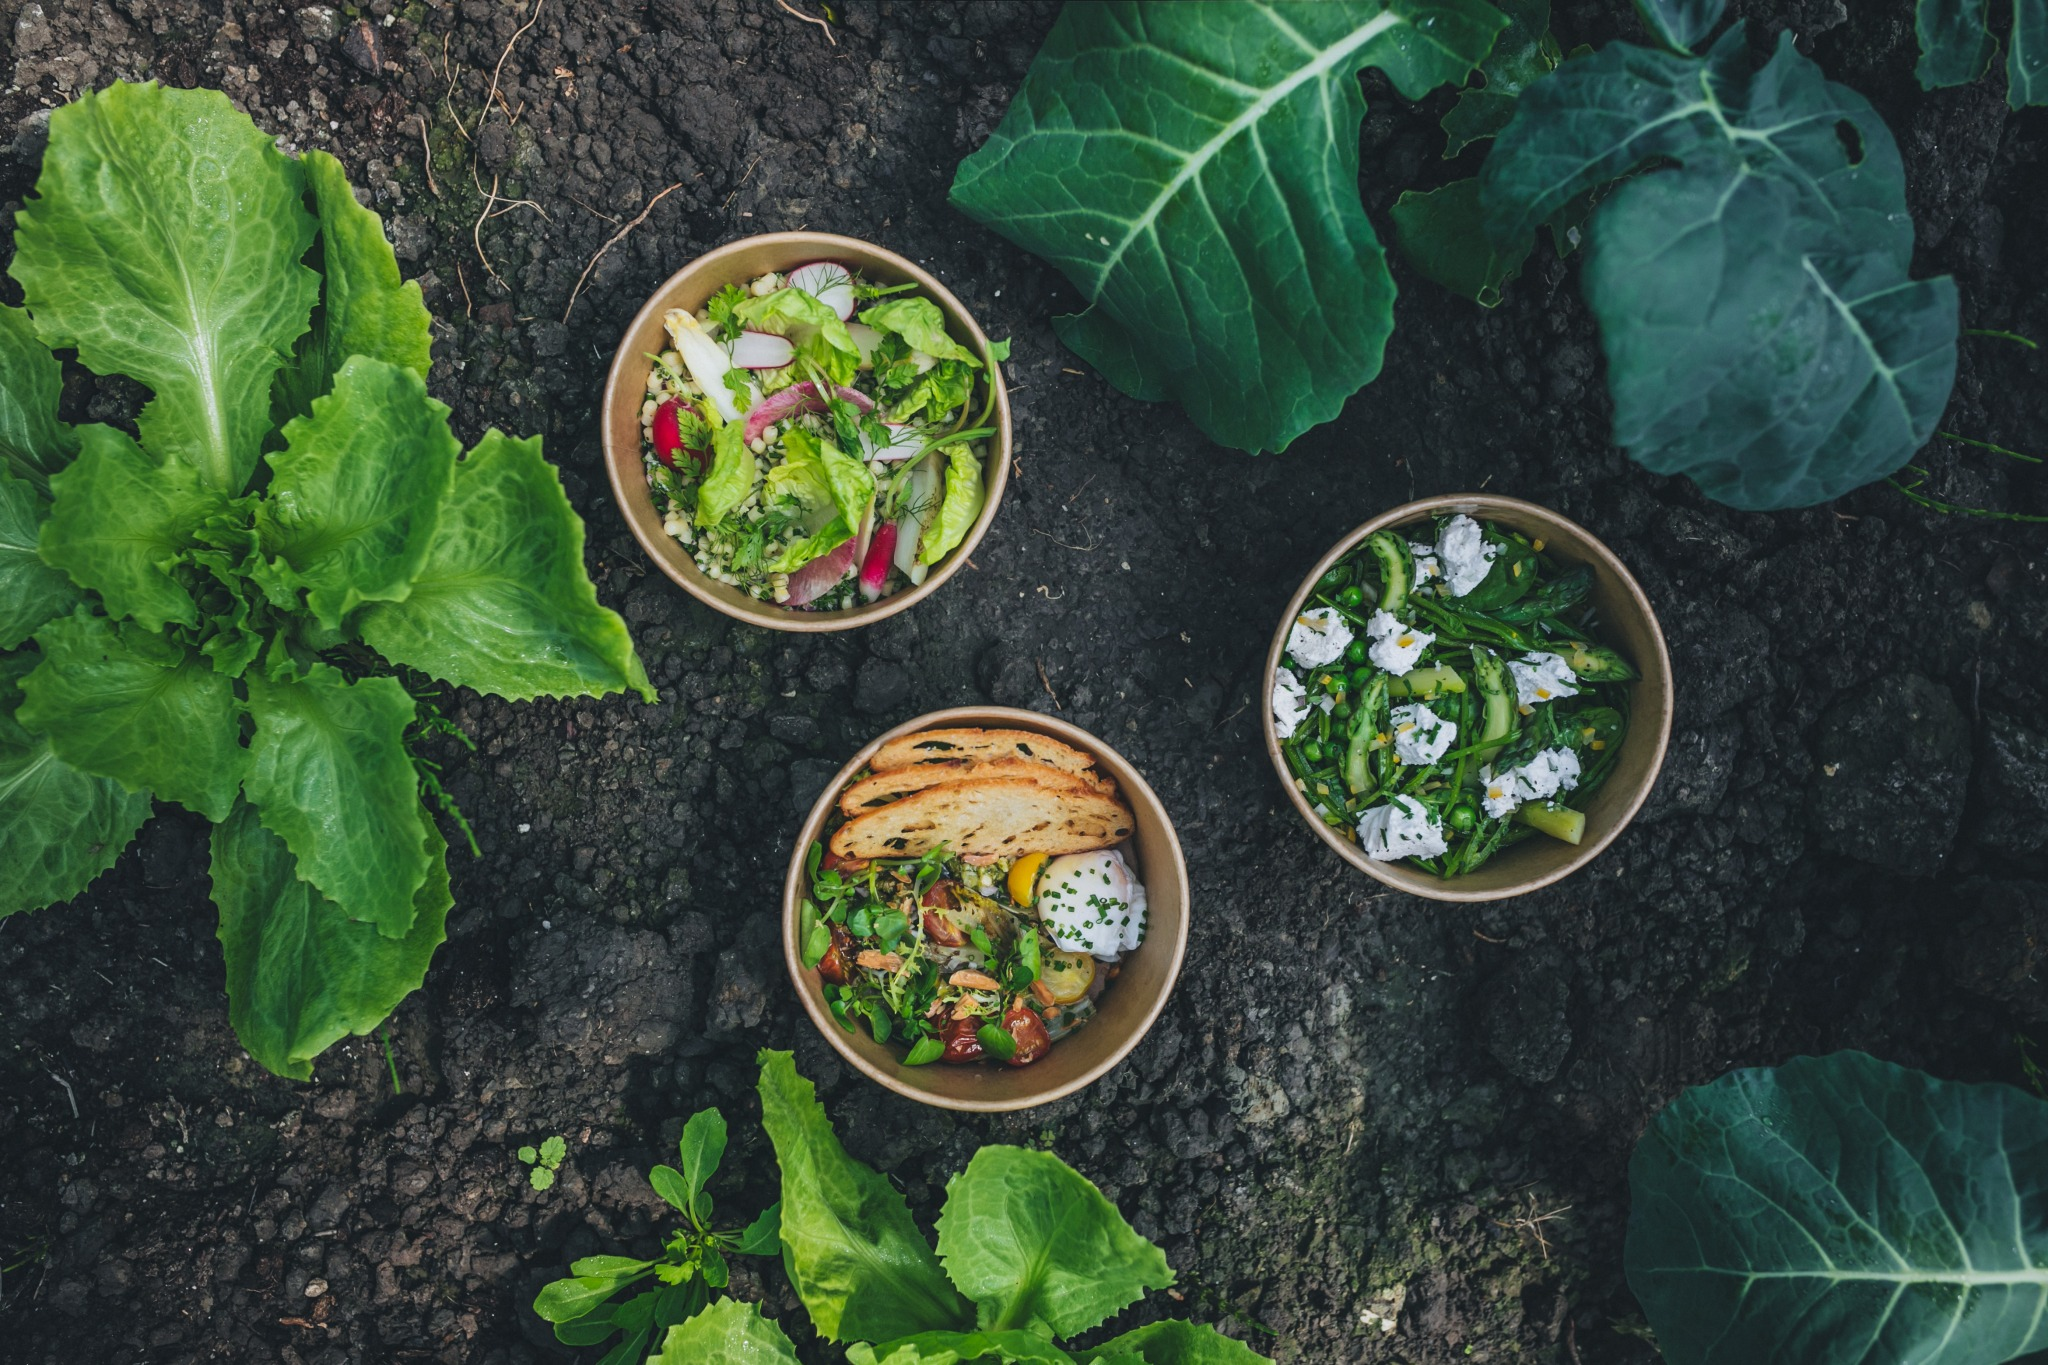 Delicious and organic salads